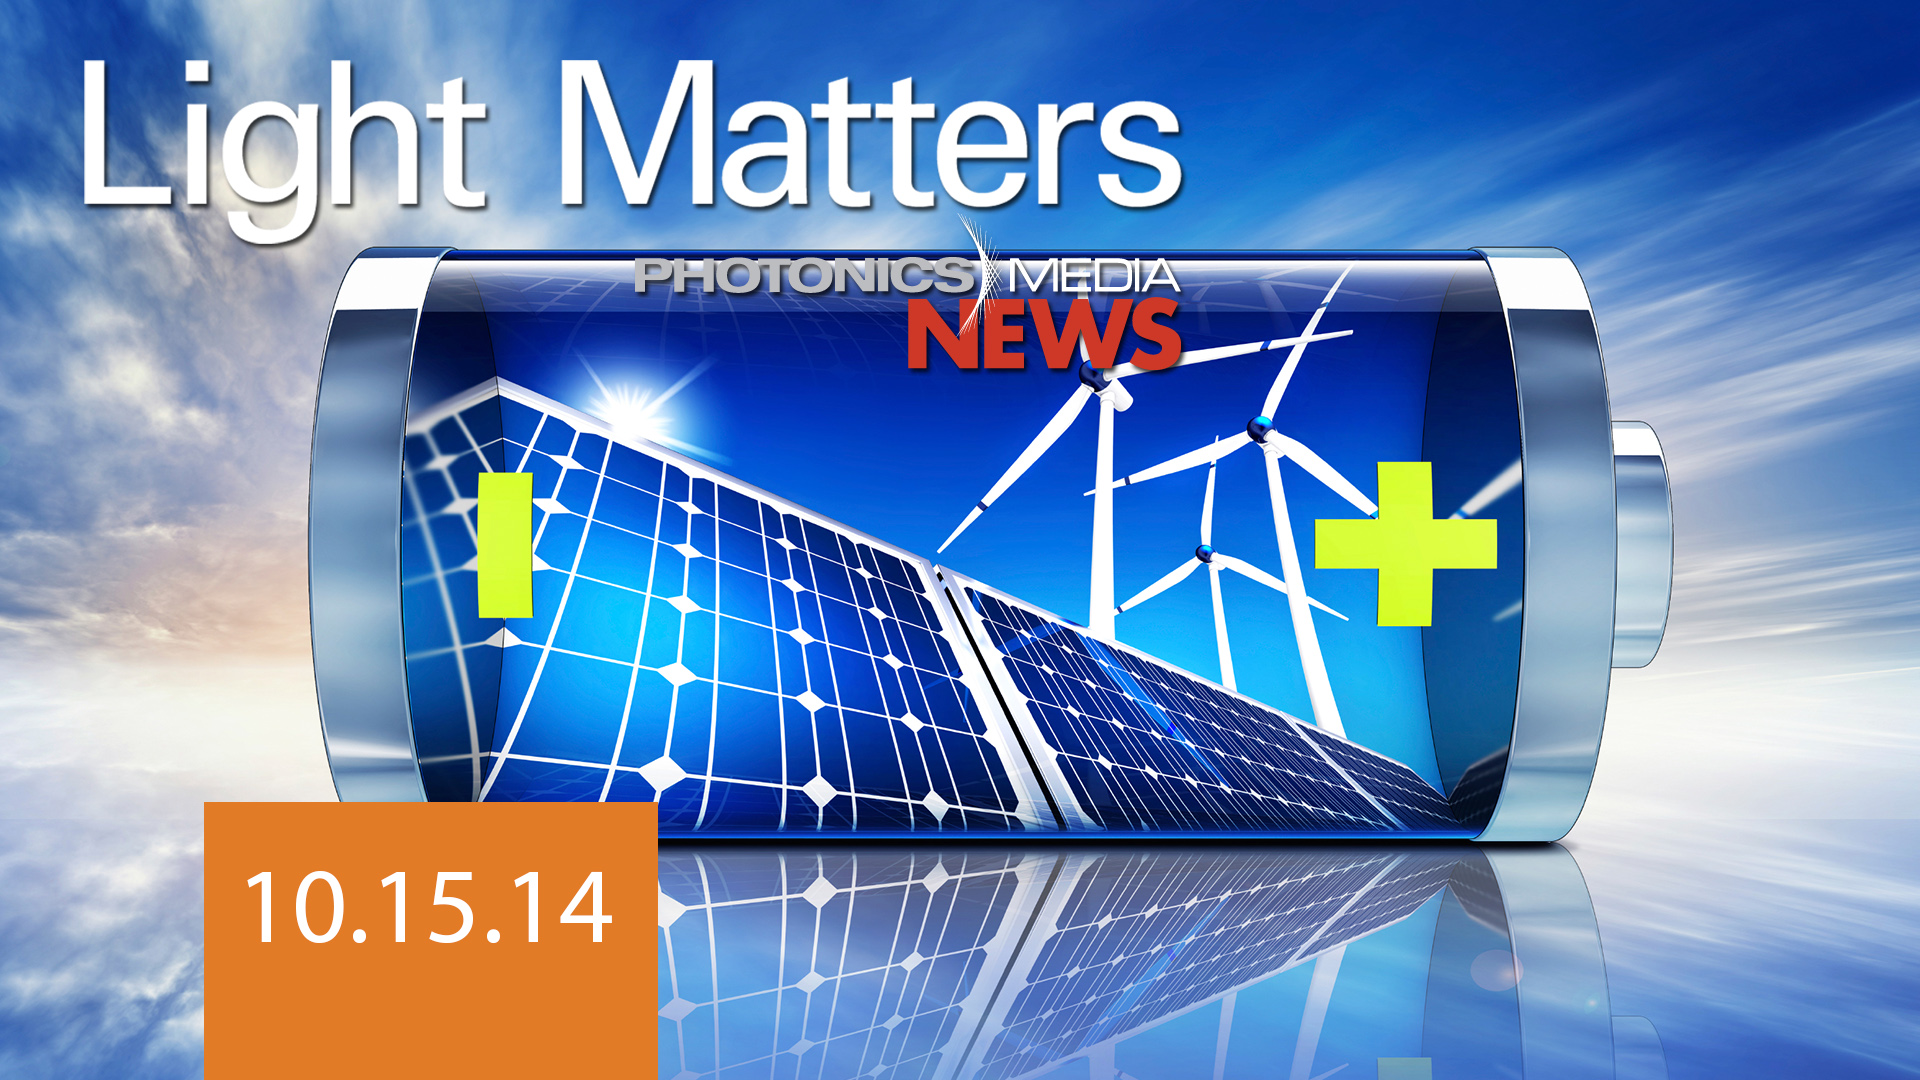 3-D Imaging & Energy-Storing Solar Cells - LIGHT MATTERS 10/15/14 (mp3)